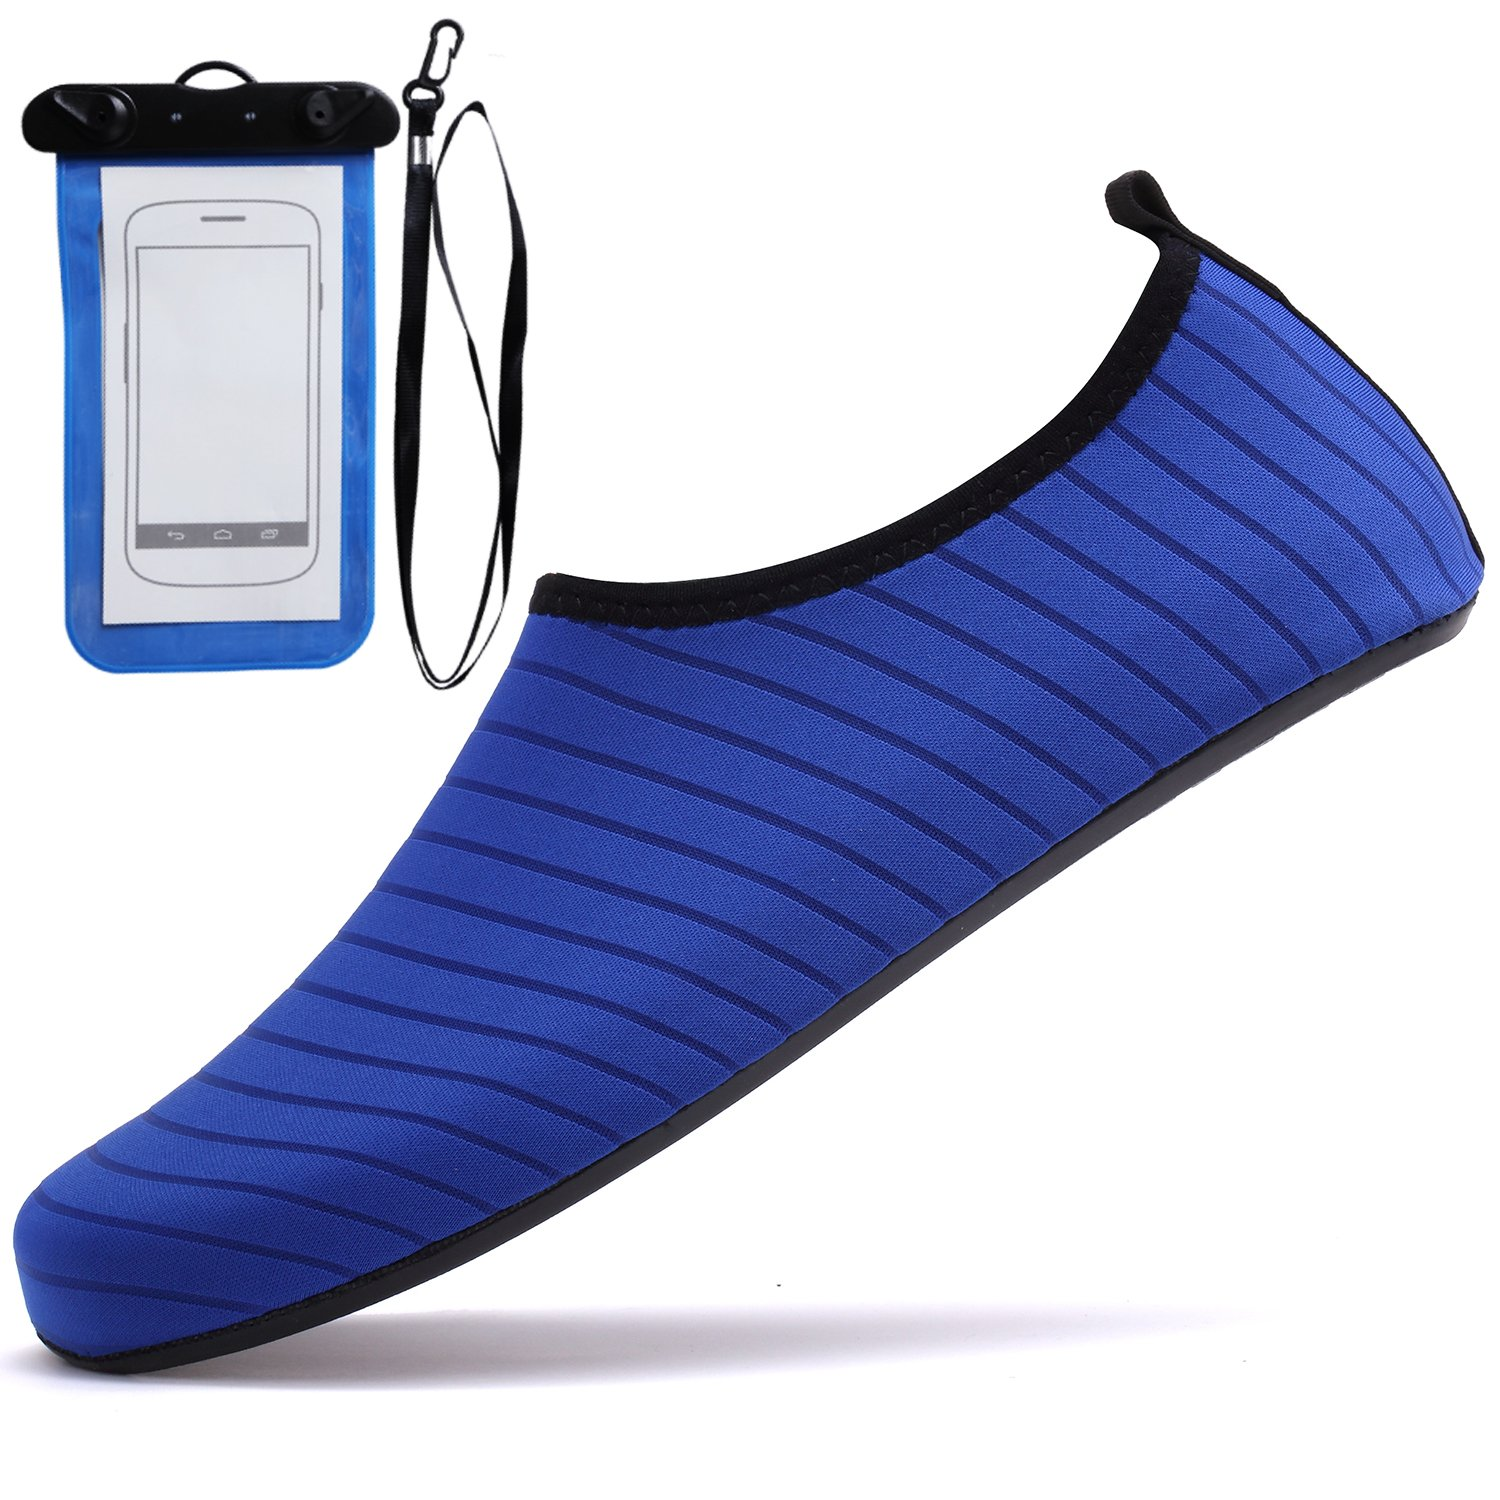 Sixspace Barefoot Shoes Beach Running Shoes Water Shoes Quick-Dry Aqua Yoga Socks for Surf Swim Water Sport, Dark Blue